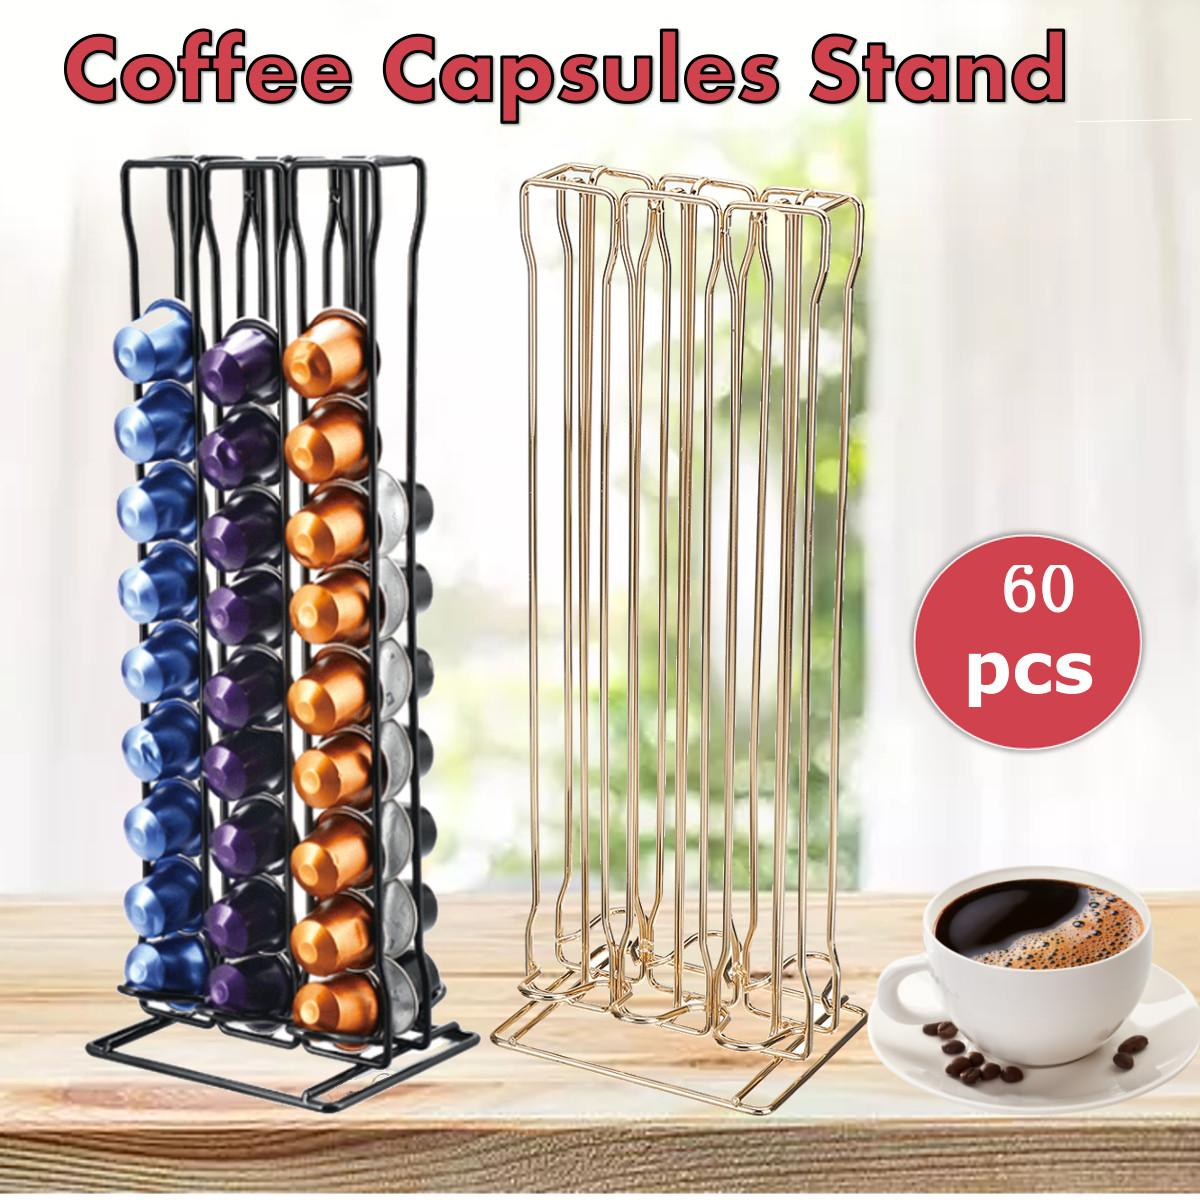 Practical Coffee Capsule Holder Stand For 60 Nespresso Capsules Storage Soporte Capsulas Nespresso Coffee Holder Metal Iron